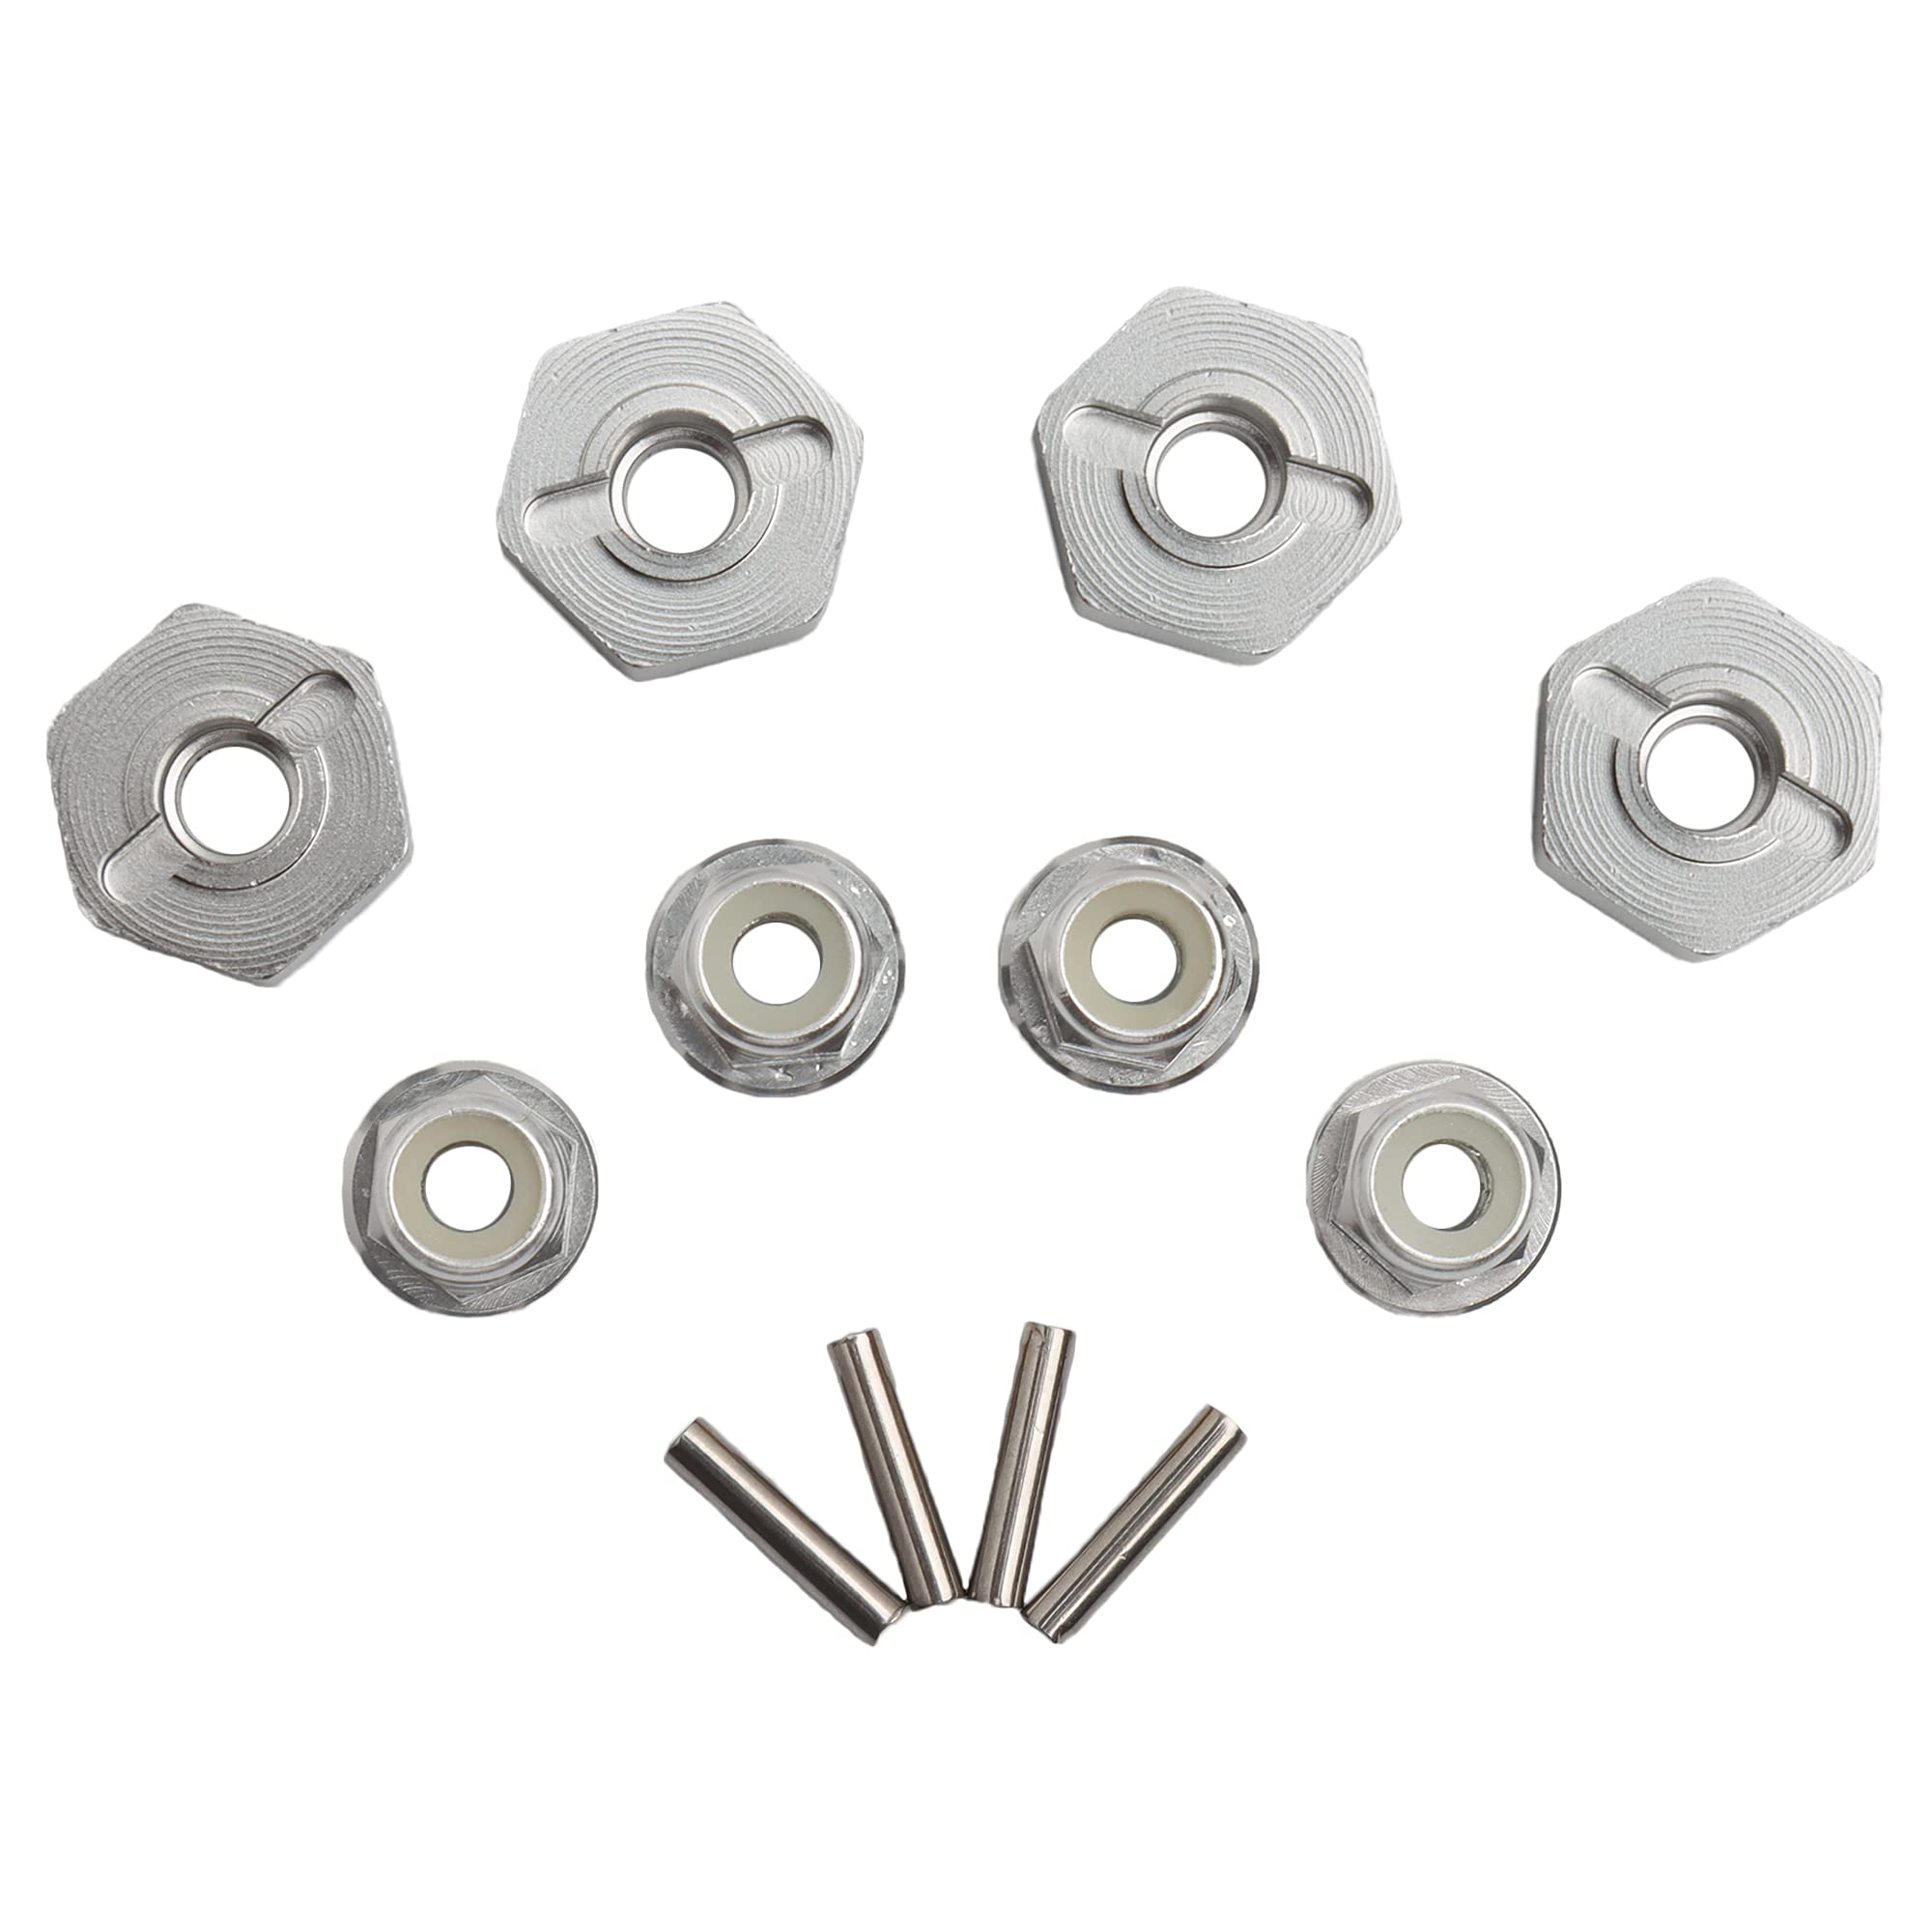 GDOOL 12mm Wheel Hex Hubs Drive Adapter 5mm Thick & Flange s